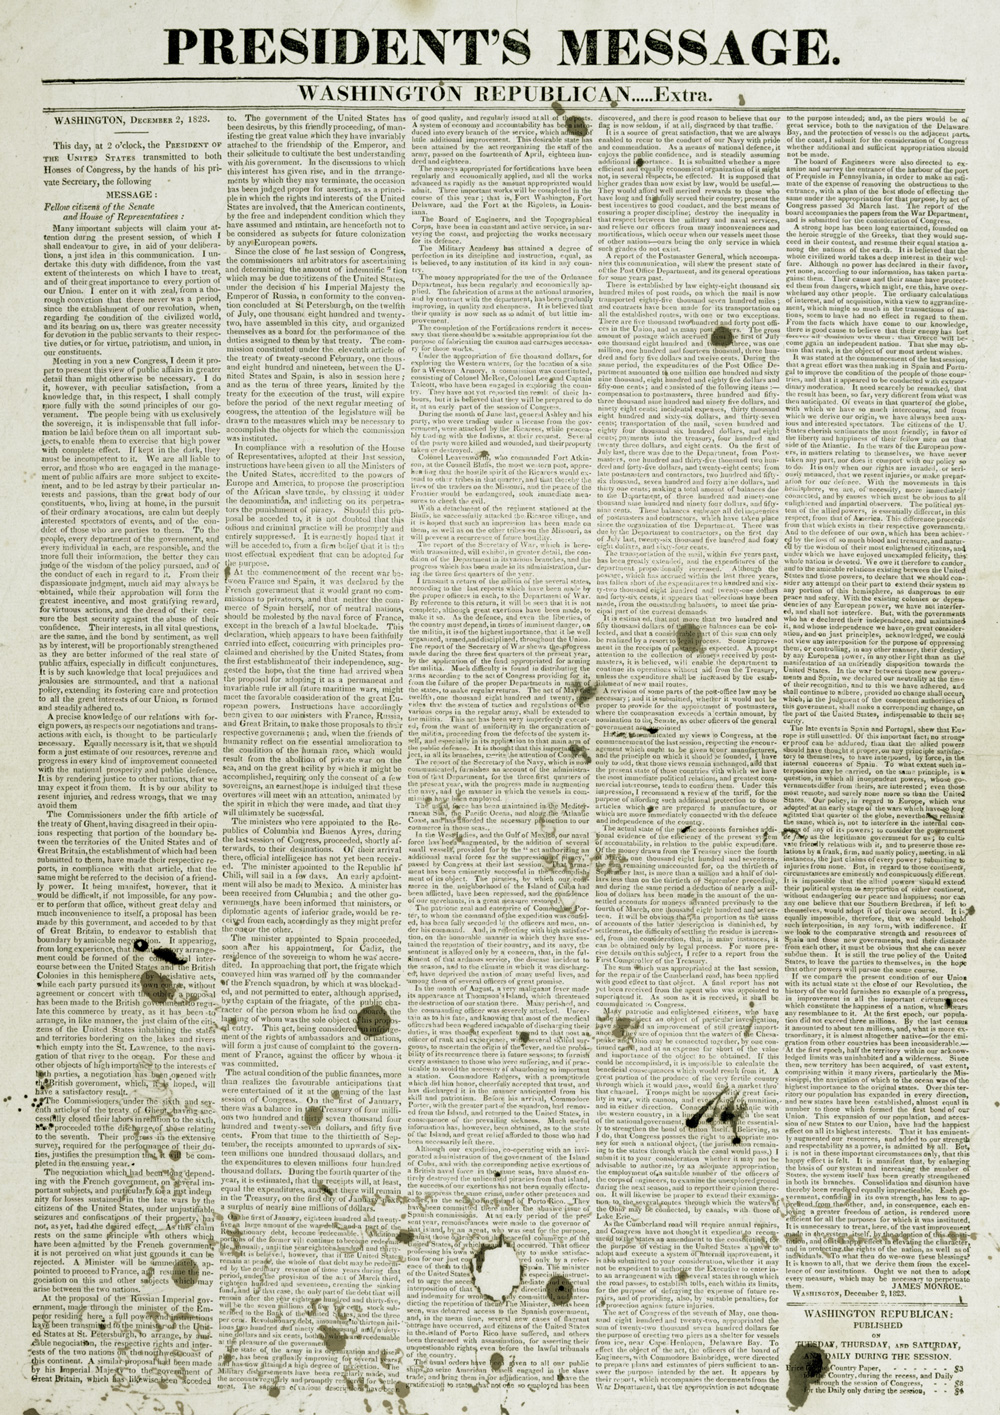 President's Annual Message to Congress, Washington Republican Extra, 1823 (GLC)